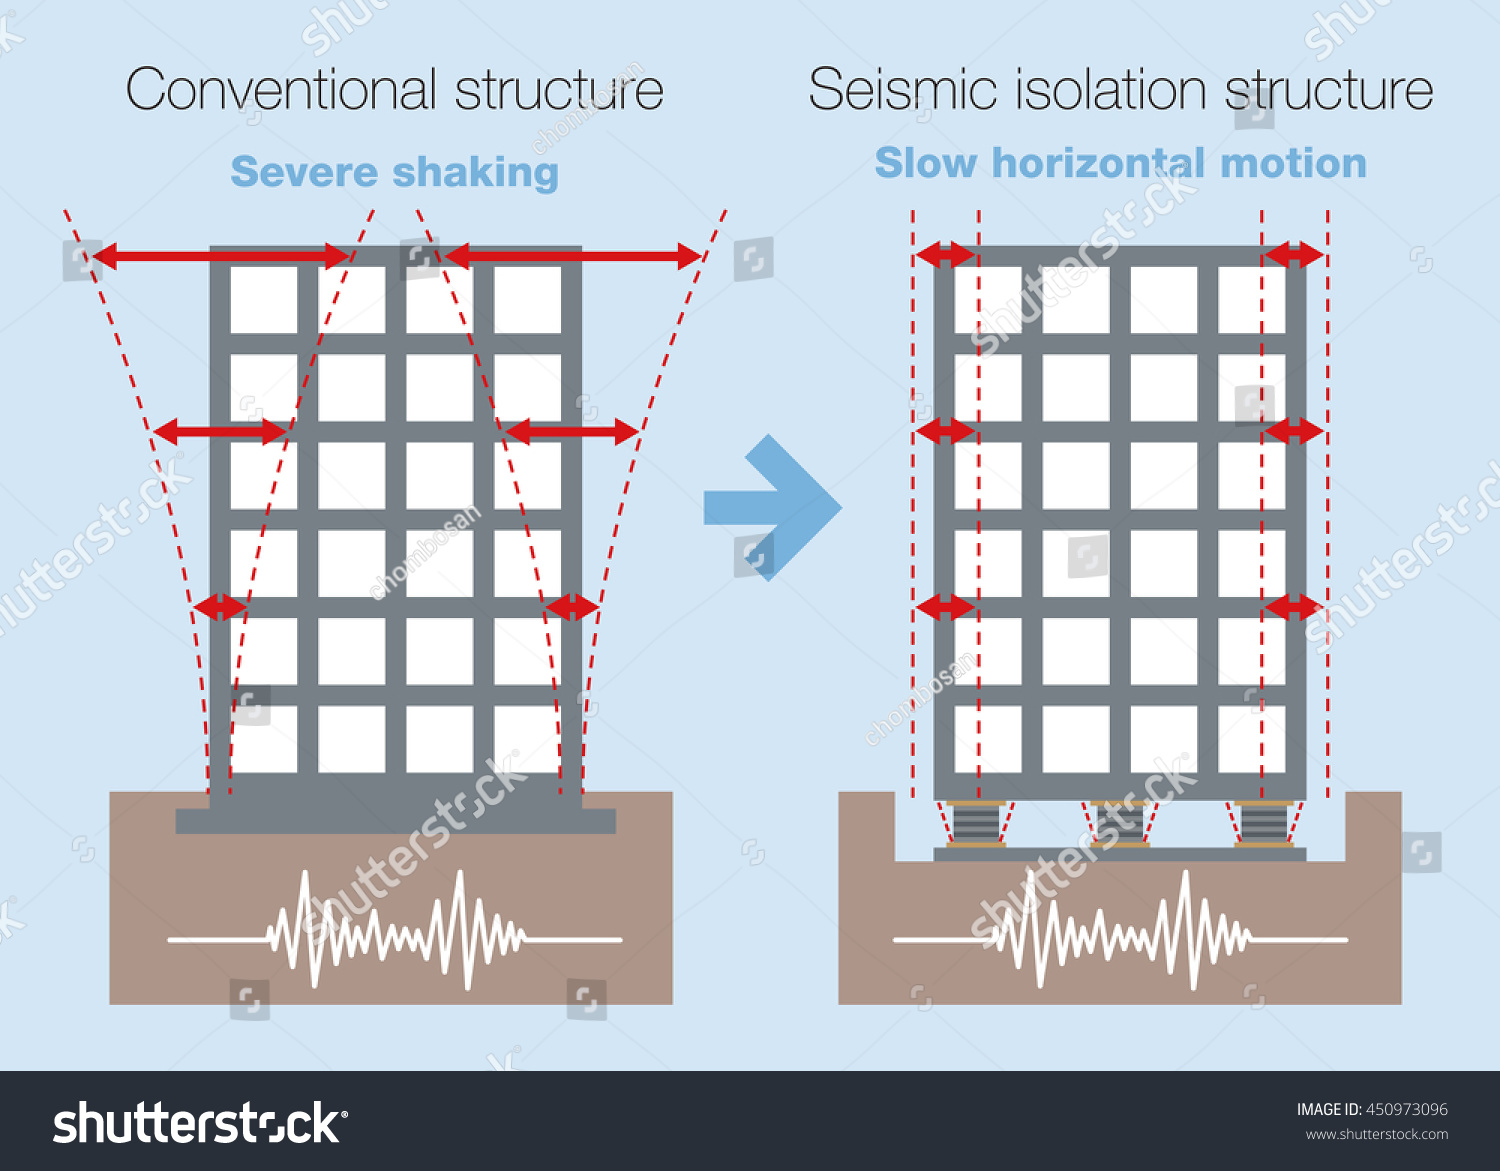 Earthquake Resistant Structure Contrast Diagram Conventional Stock Vector